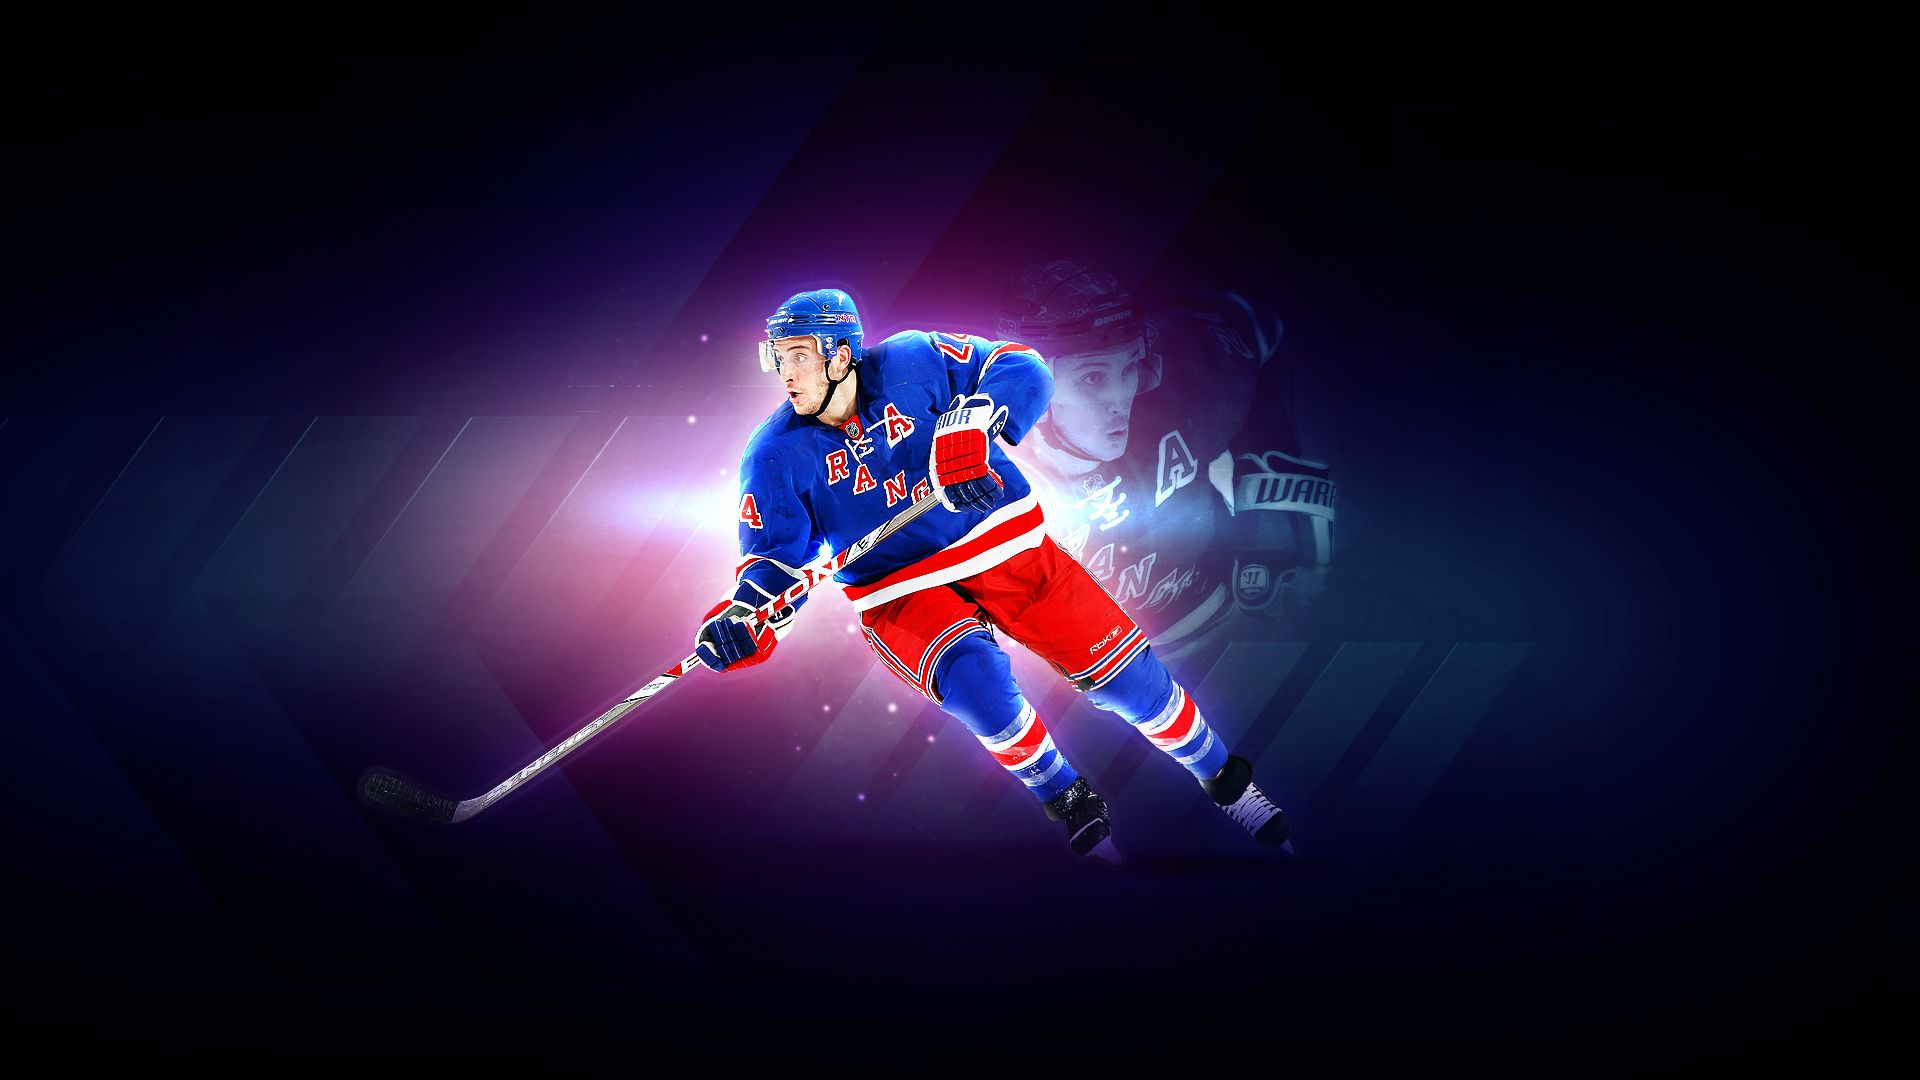 Cool Hockey Player Backgrounds Google Search Hockey Players Sport Quotes Motivational Hockey Pictures